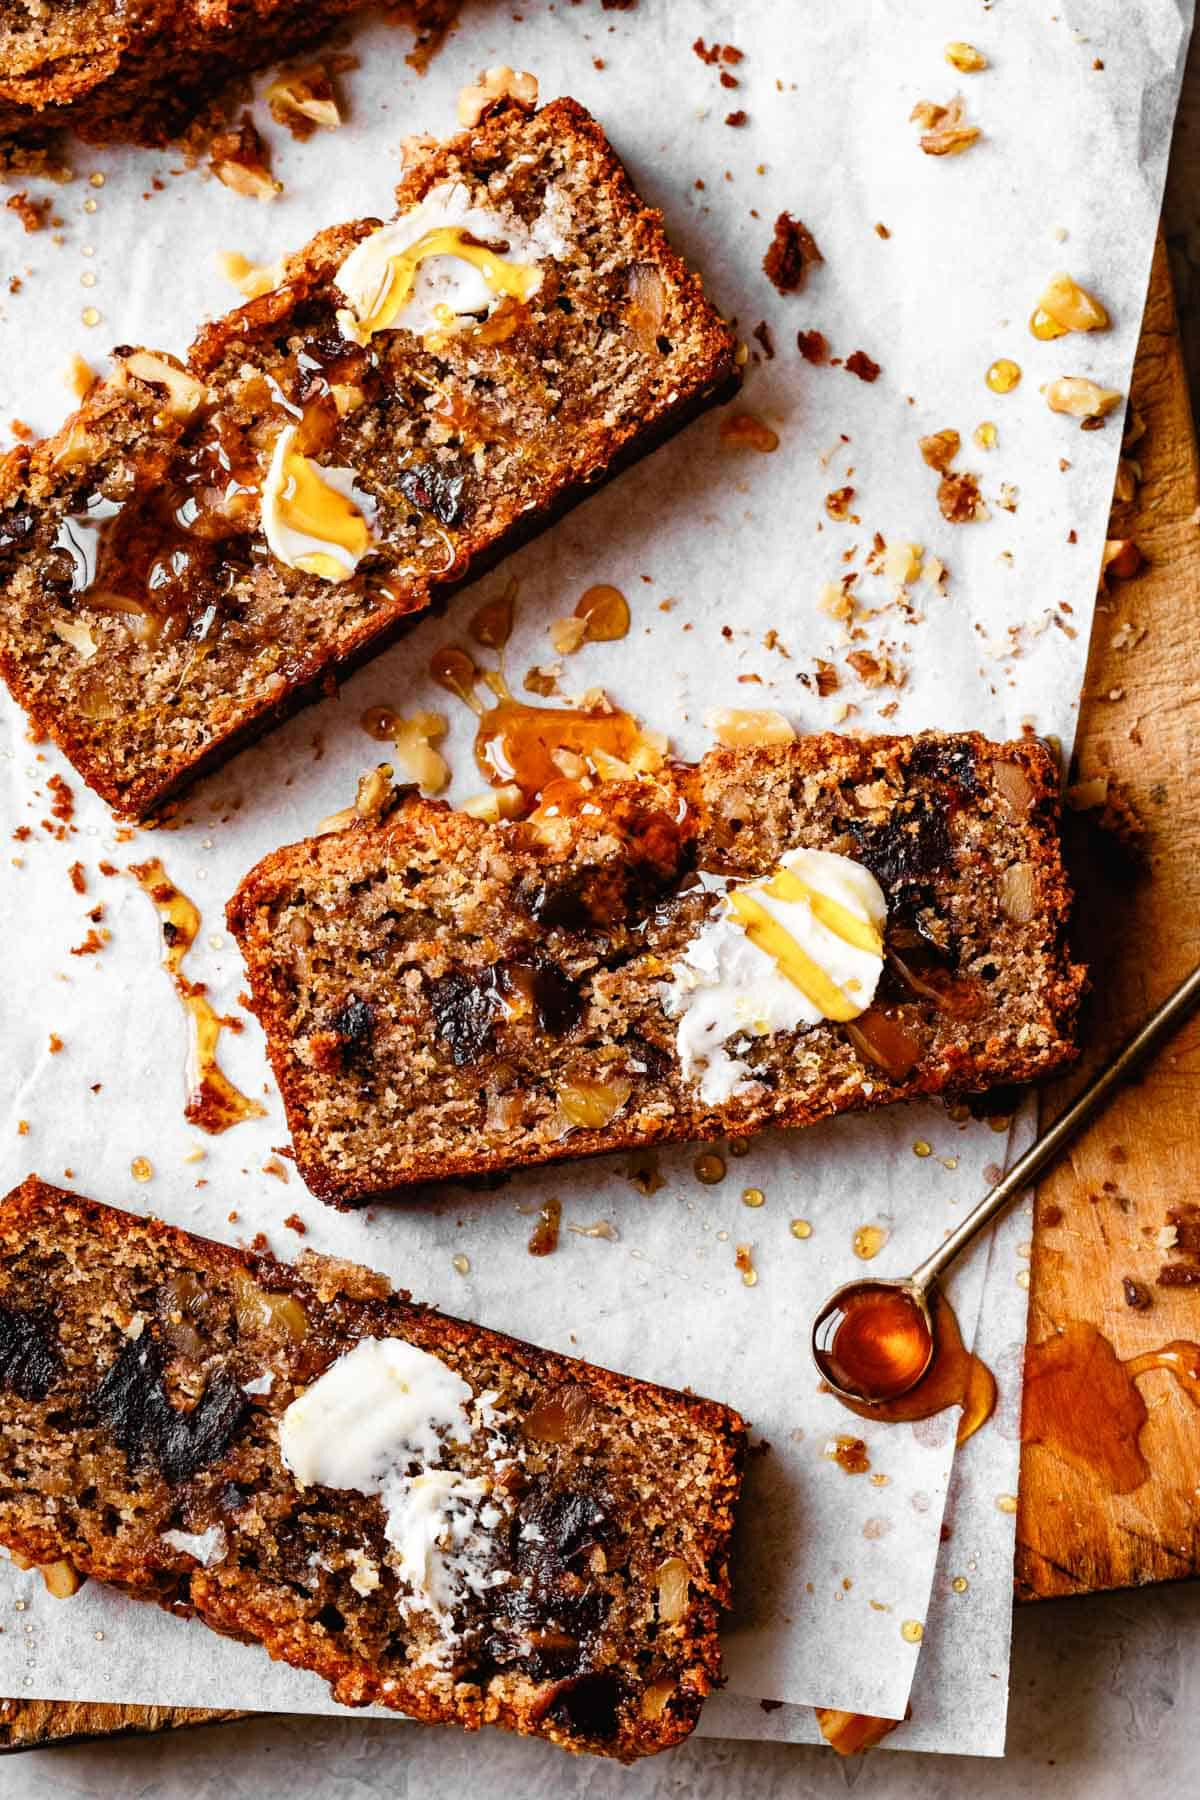 slices of banana bread on parchment with honey drizzle